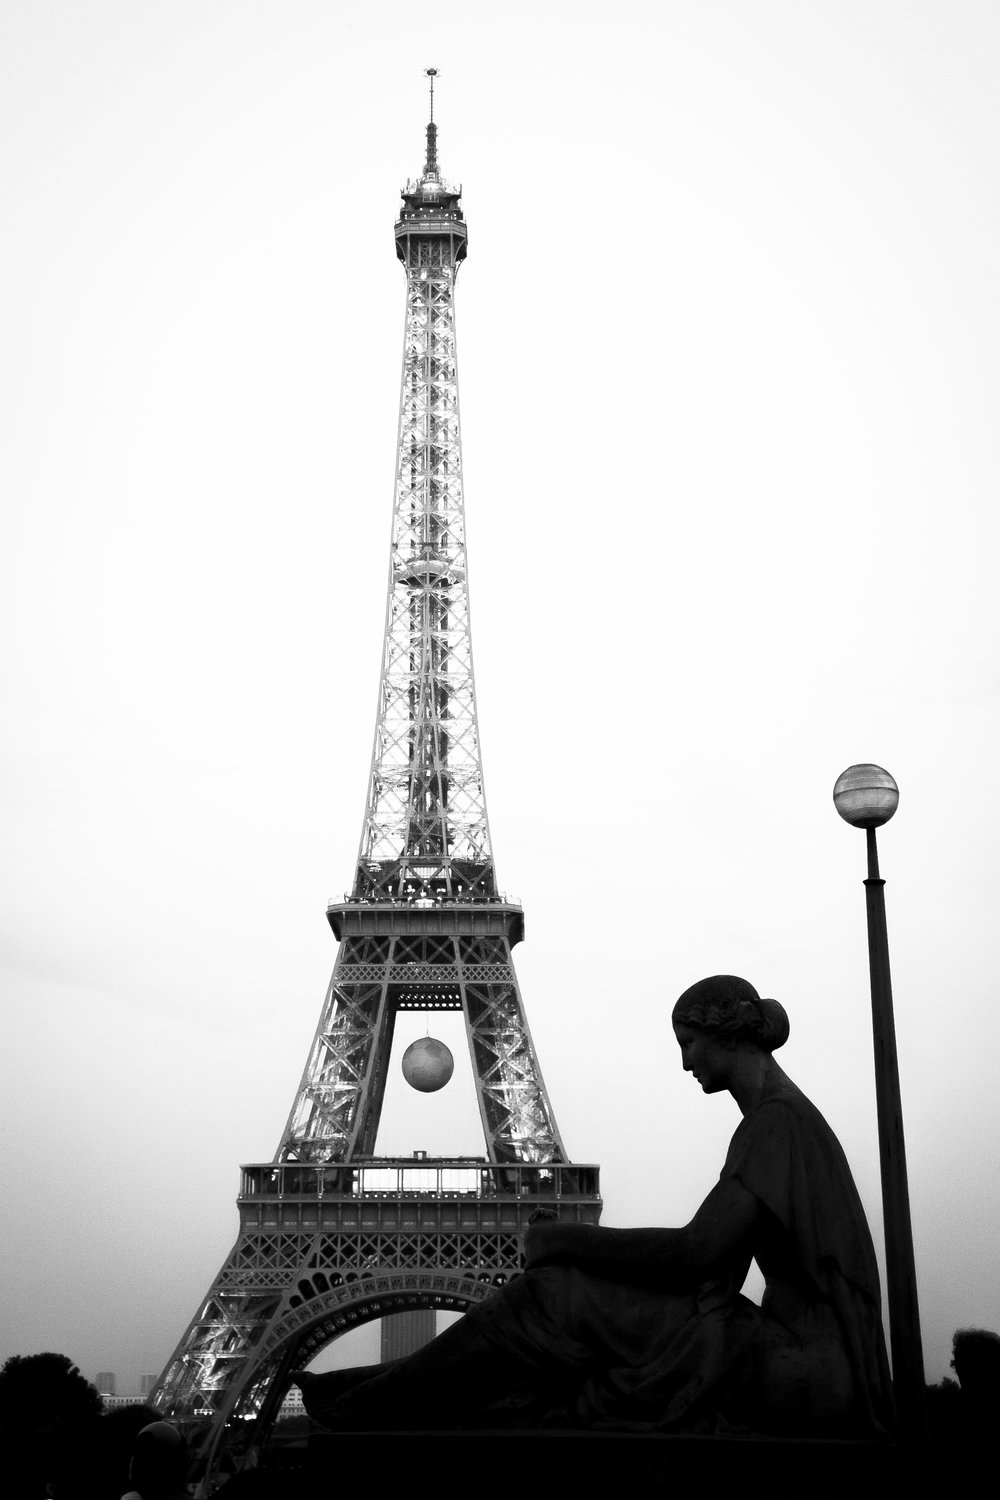 "An Image for a Friend | Paris, France - On my first trip to Paris, I stood at the Trocadéro and found a view of the ""Waiting Woman"" statue with the Eiffel Tower beyond. I would edit it much later, turning it to black and white and a heavy silhouette. I did not expect to be so moved by it. A friend from college, who used to live in Paris, gave me some great recommendations before my travels abroad. When the image was complete, I knew it was a gift for her. A shot forever dedicated to my friend, Emily."